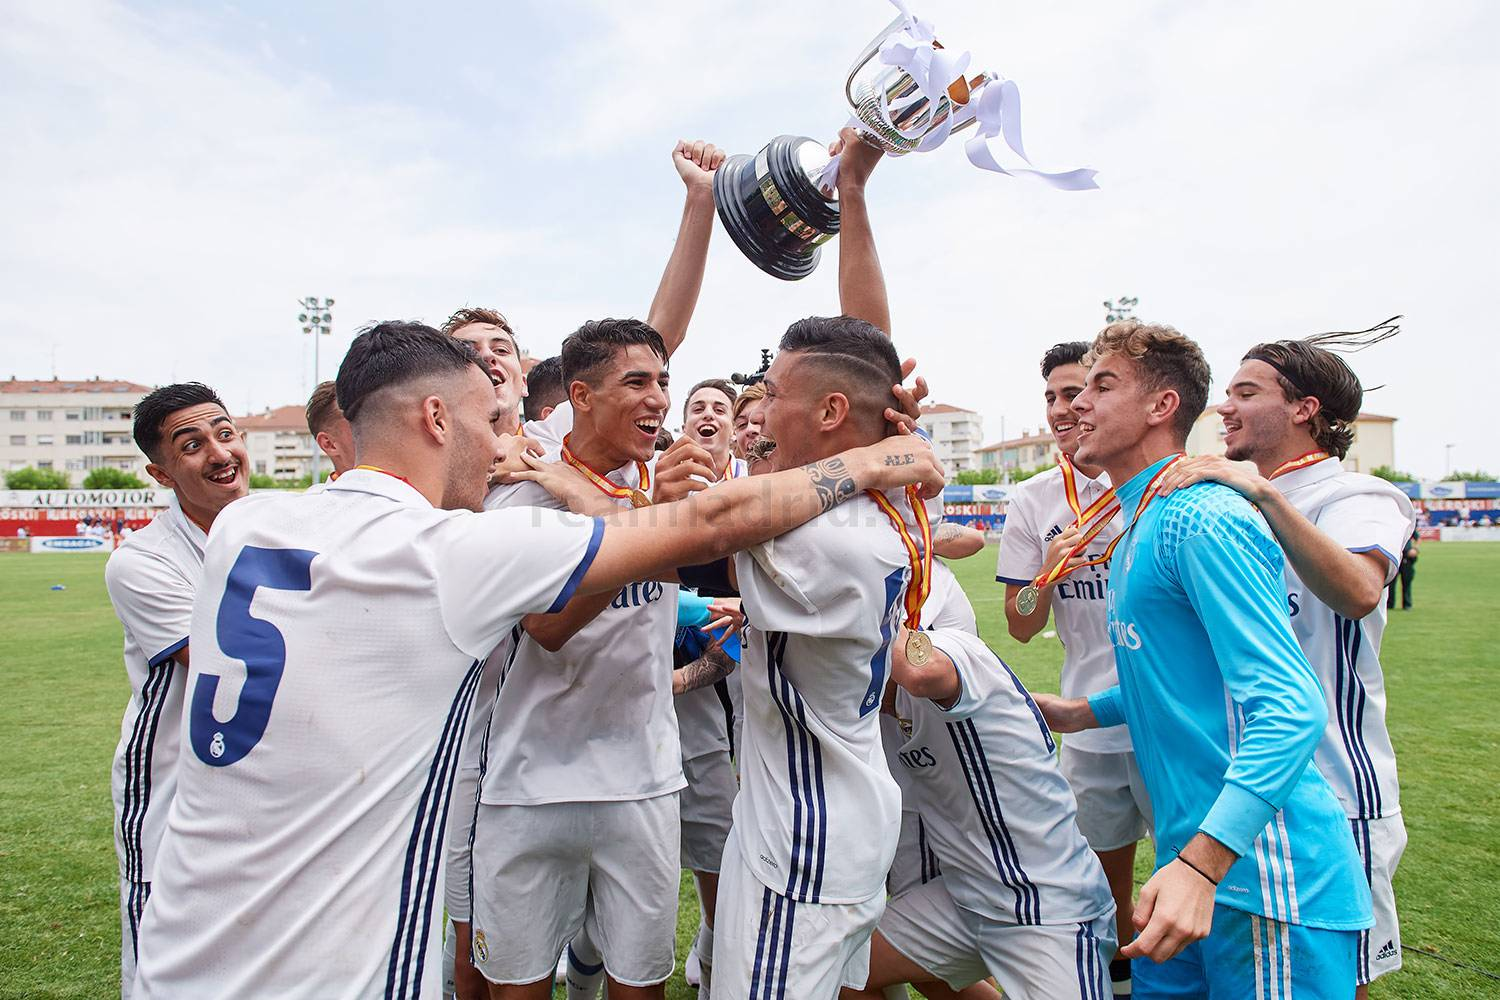 Real Madrid - Final Copa del Rey Juvenil A - At. Madrid - 25-06-2017